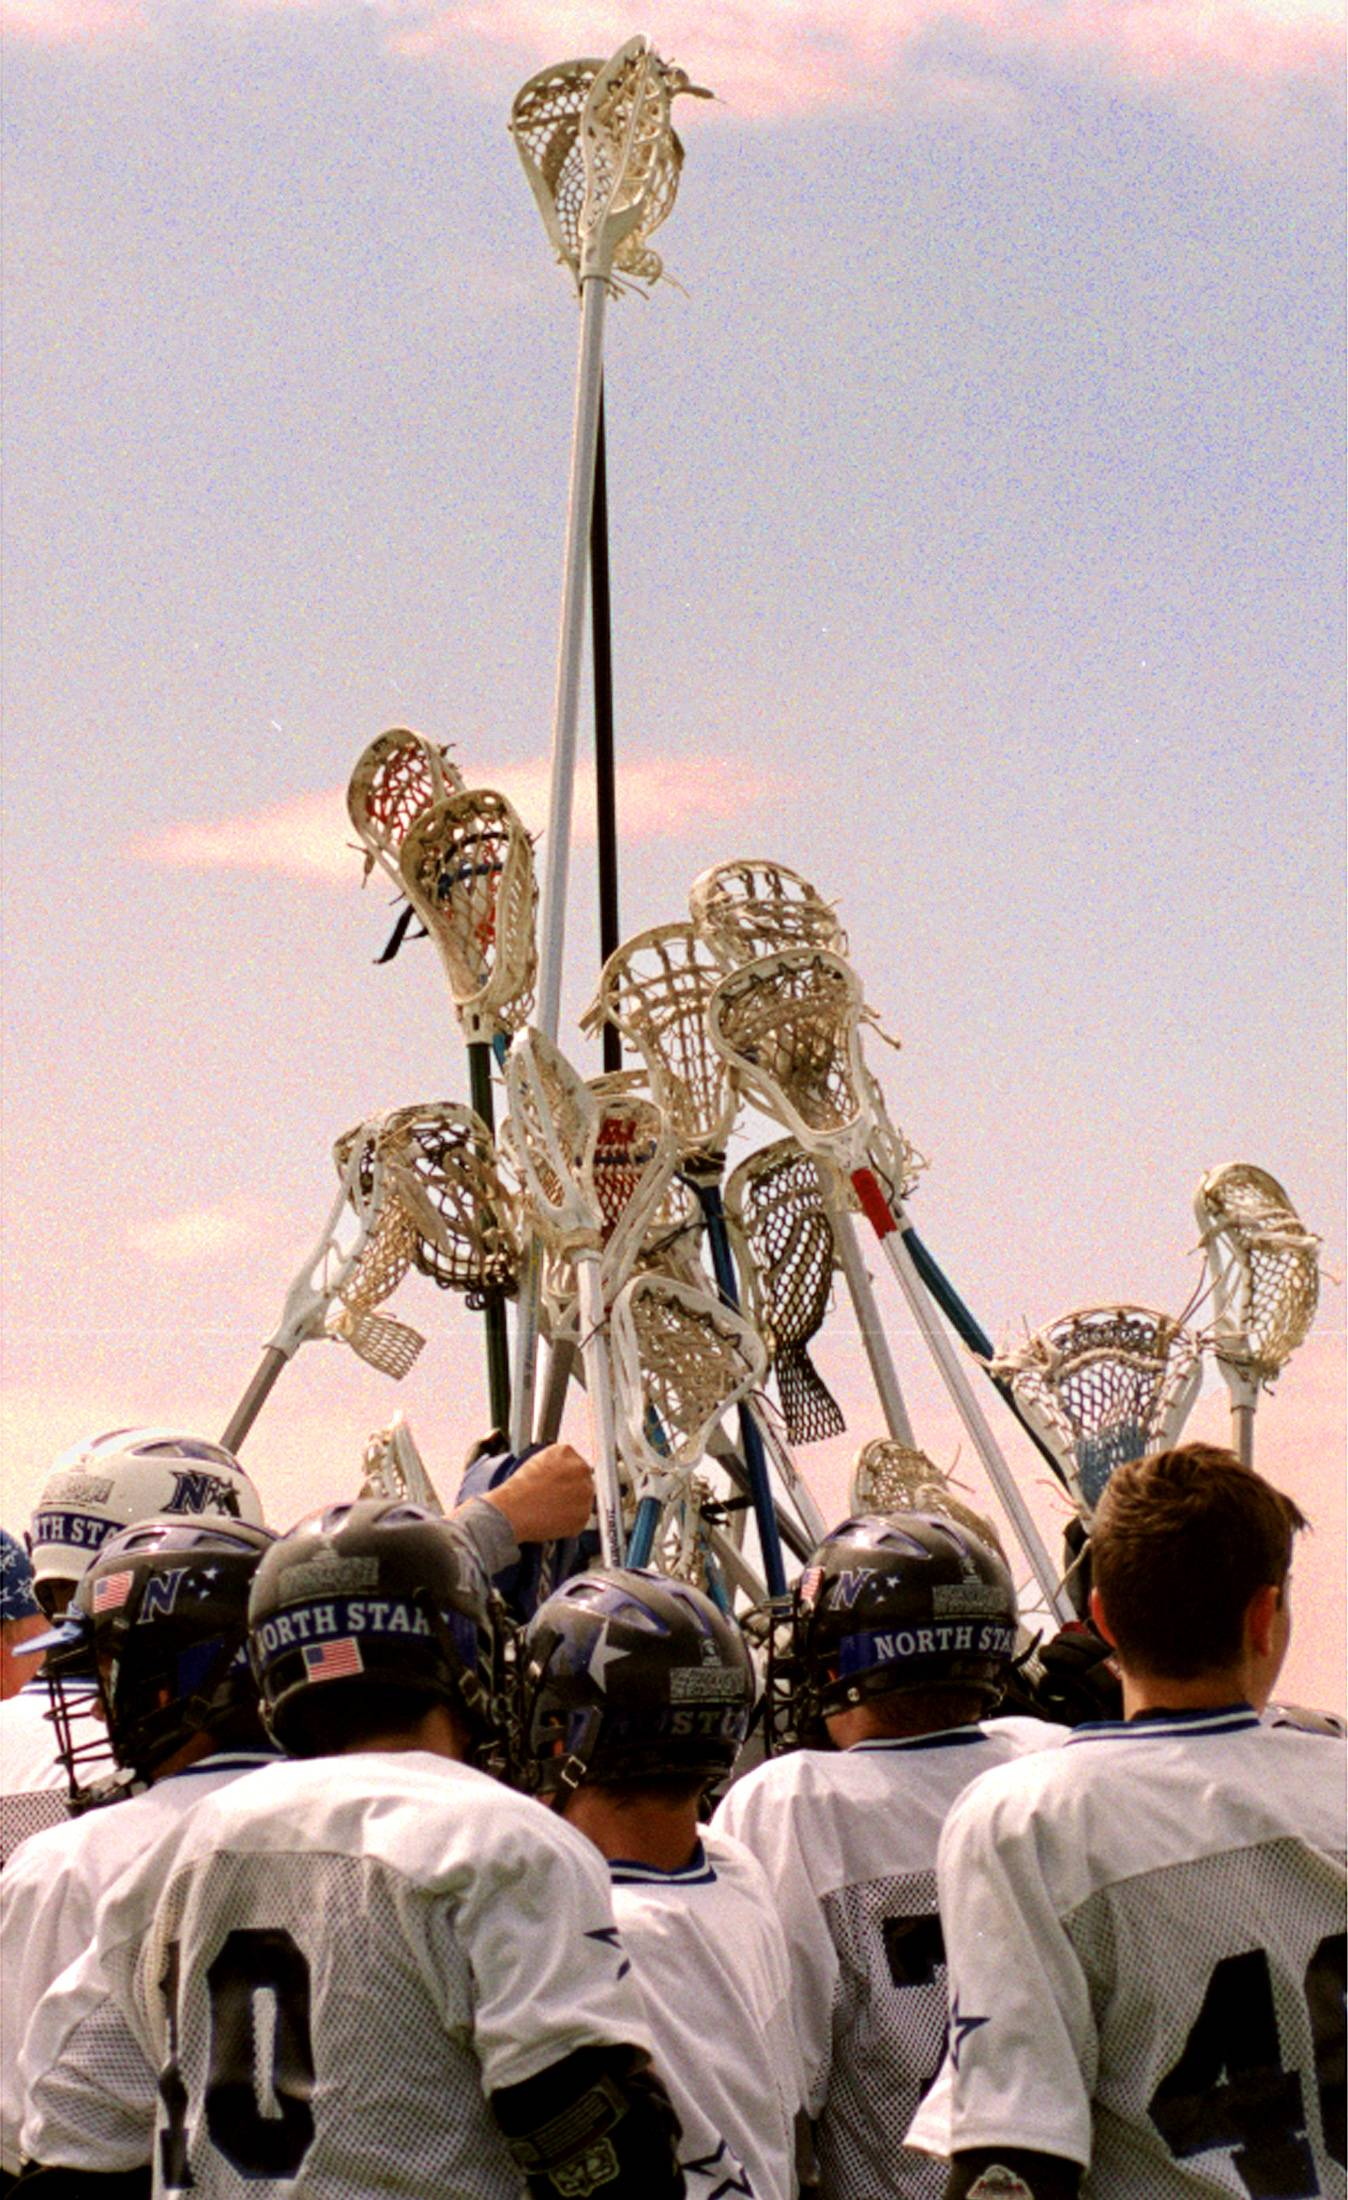 Lacrosse has been an activity for students who attend St. Charles high schools for a long time. But they've never actually played for their schools as a school-sanctioned sport until now. School board members voted this week to add the sport for the 2014-15 school year.